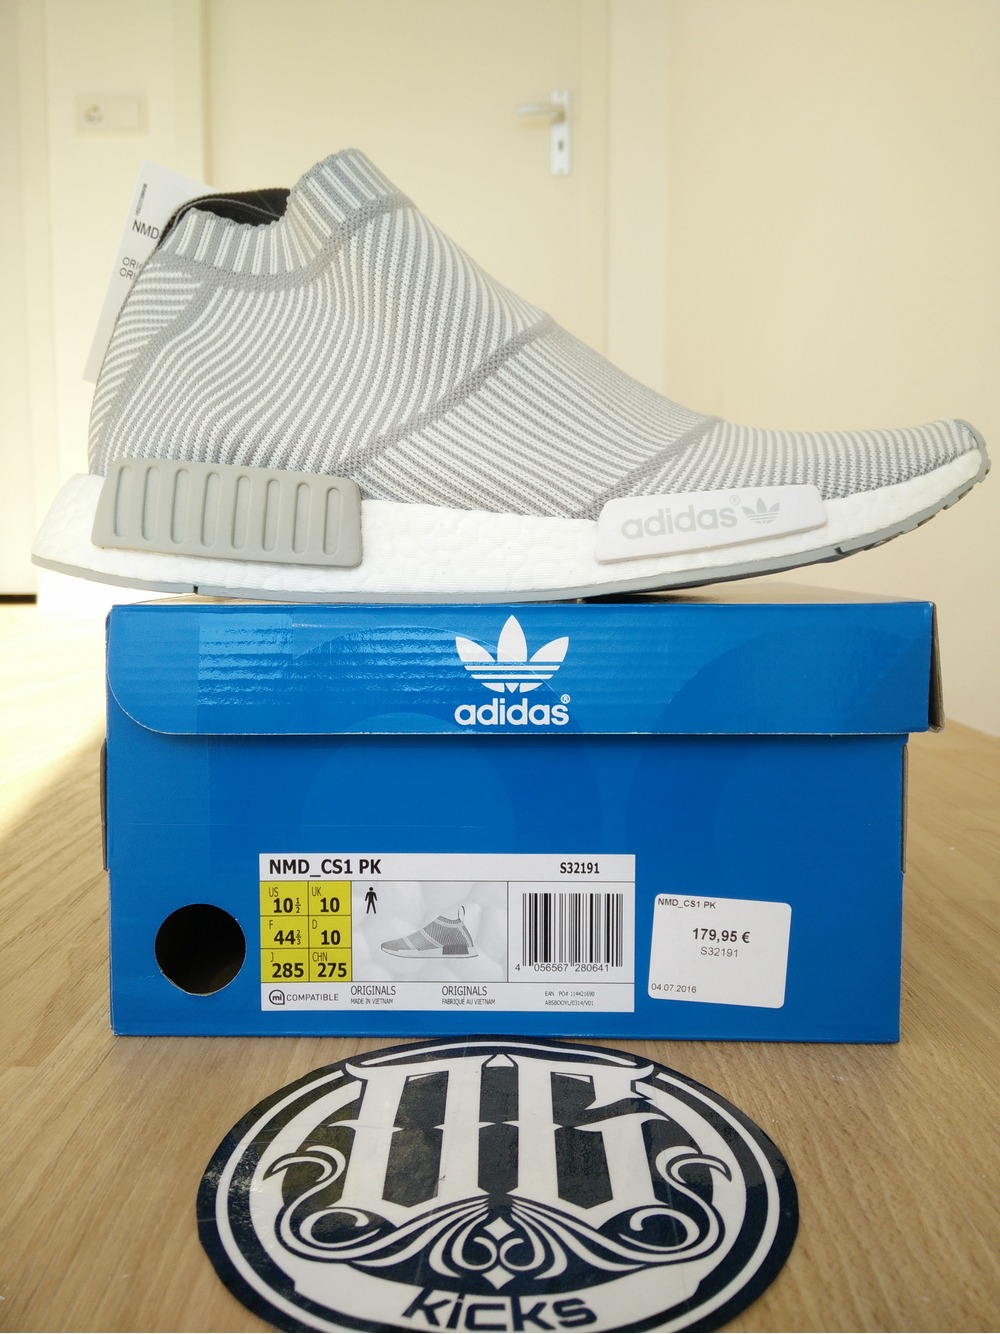 adidas NMD City Sock Wool Release Date low cost ofiluruguay.org.uy